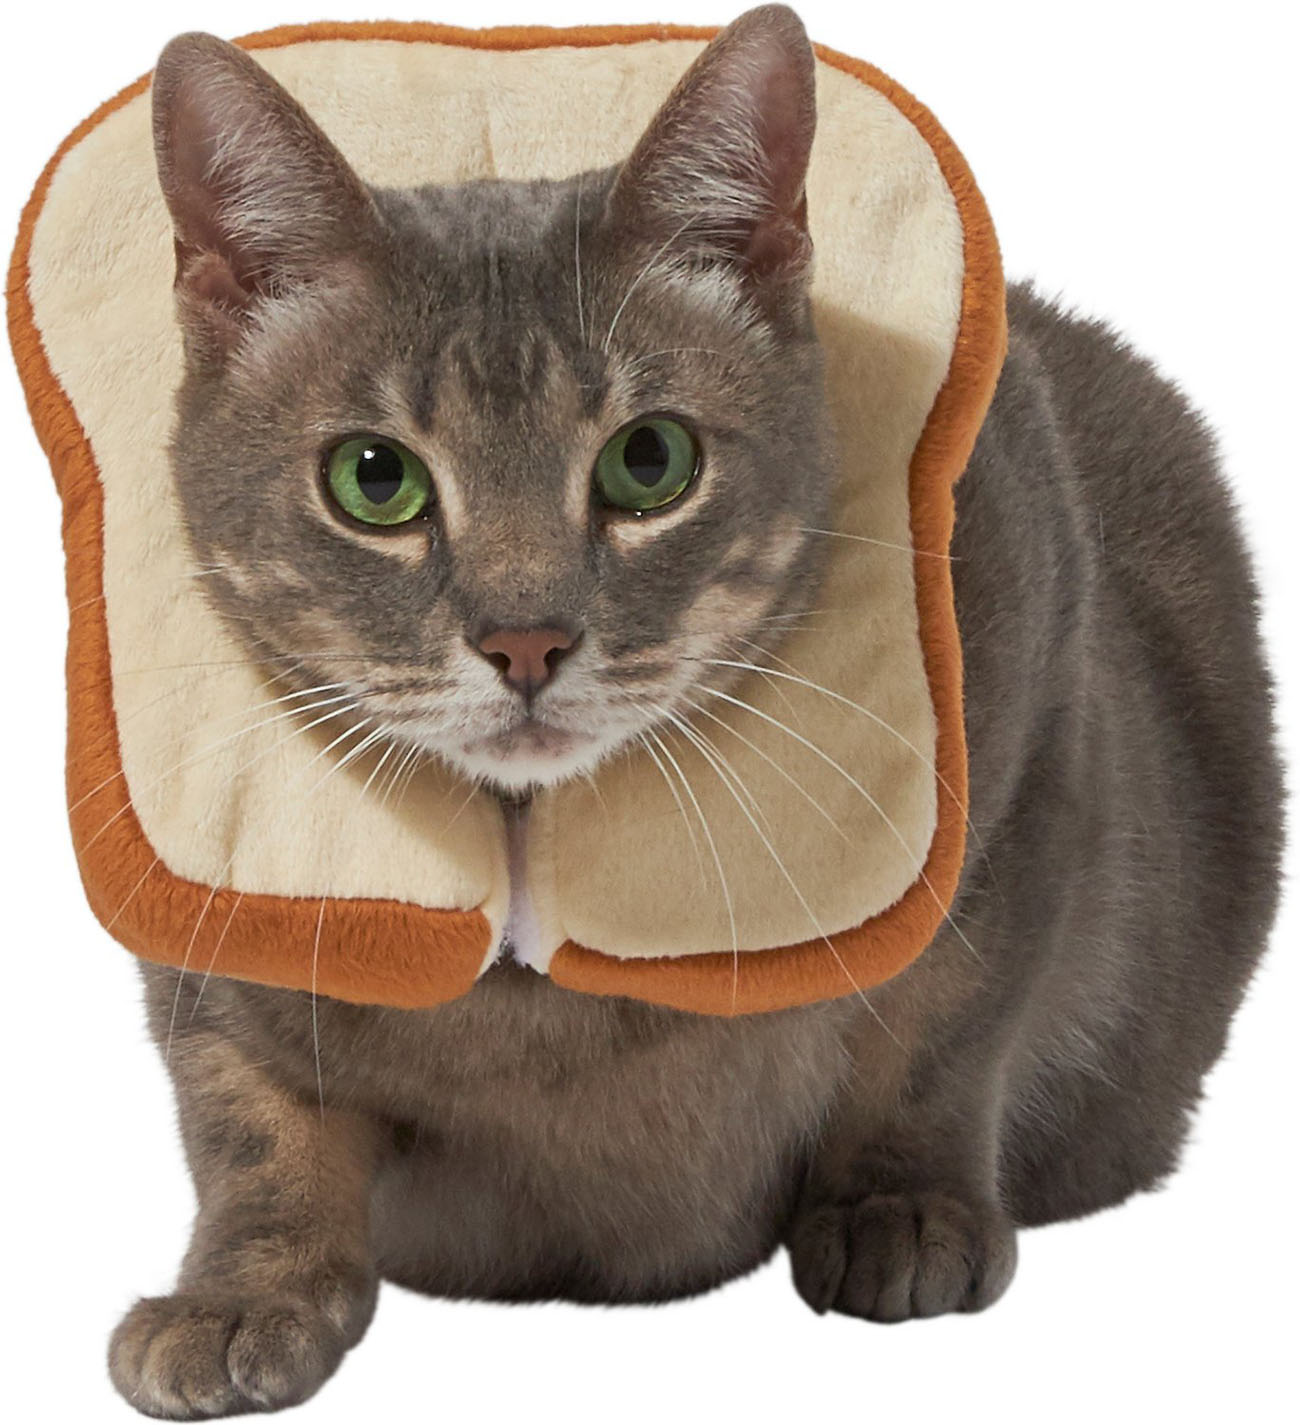 Cat breading Halloween costume for pets